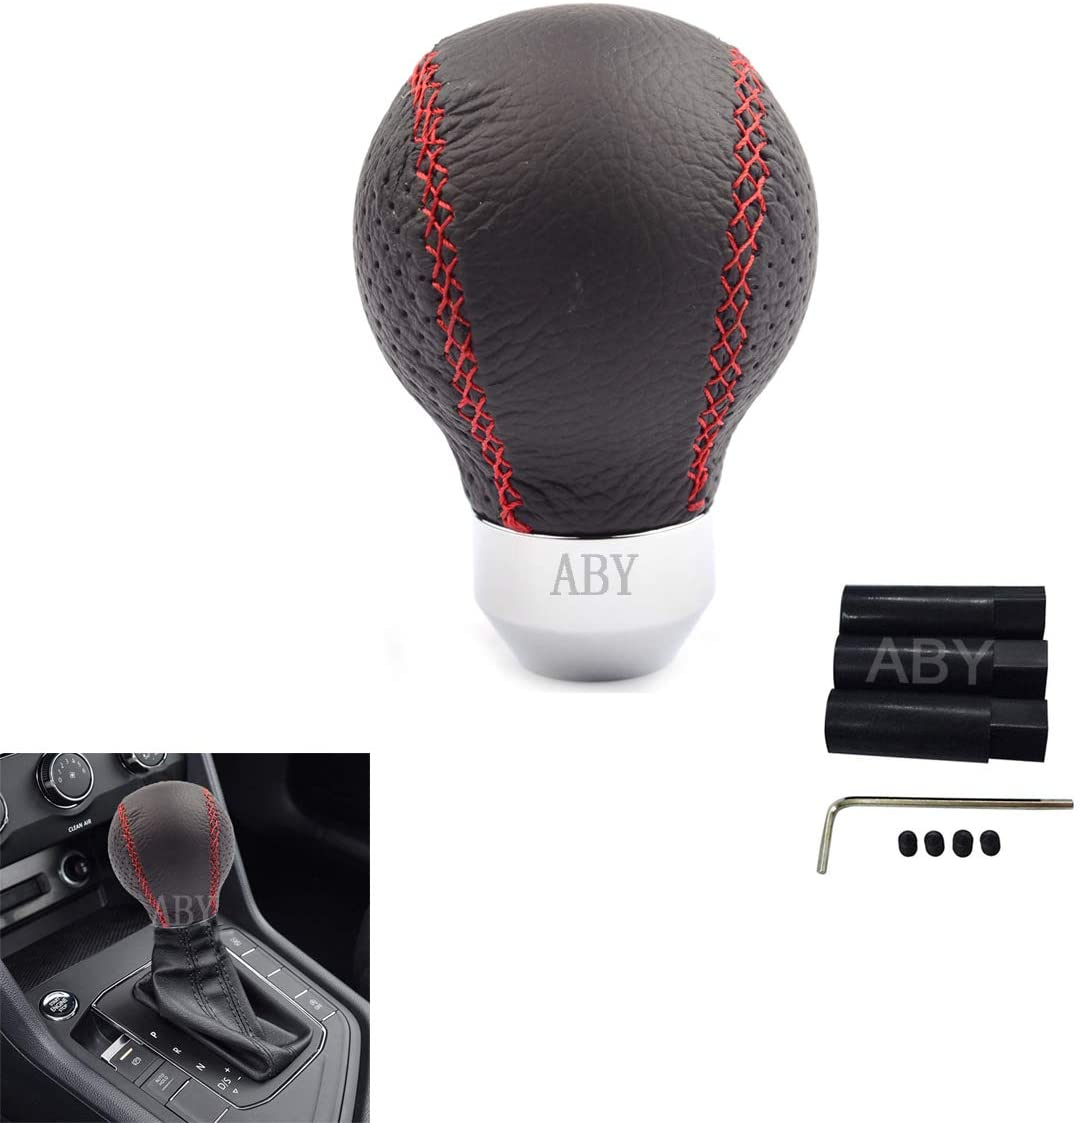 AutoBoy Smooth Leather Ball Gear Stick Shift Shifter Knob Lever Cover Universal Fit Car Manual Transmission Automatic Transmission Without Lock Button